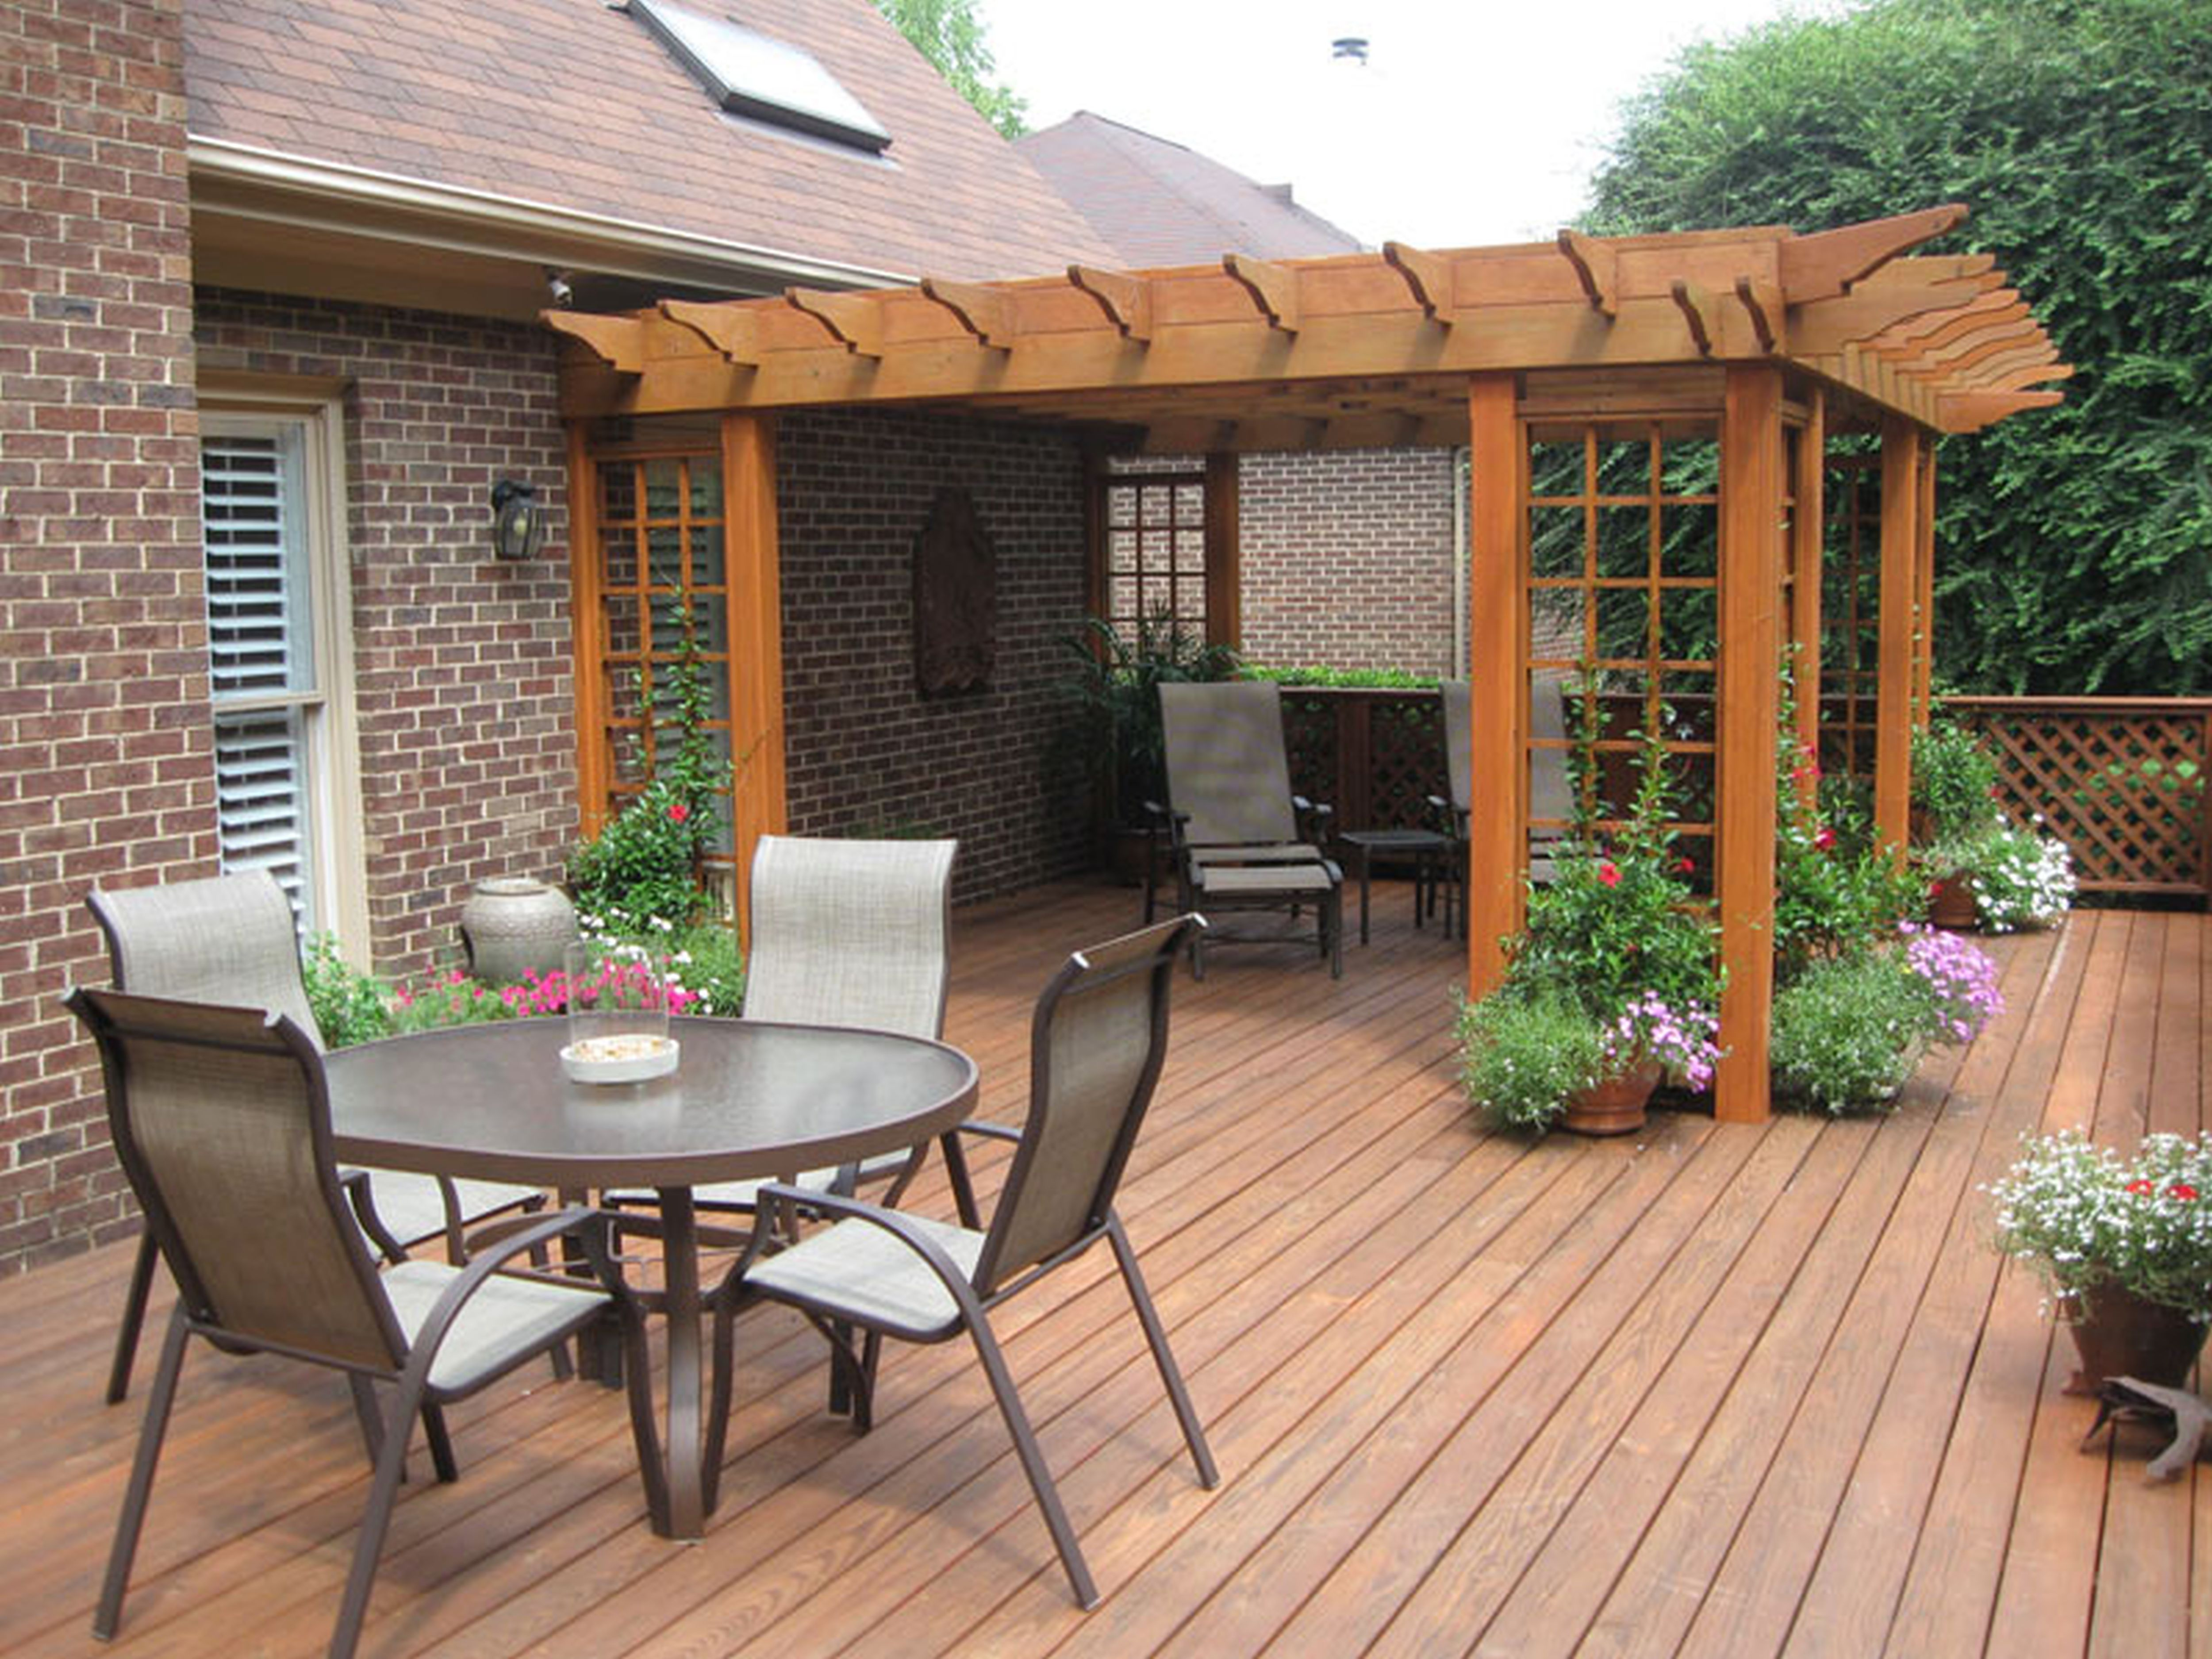 Backyard Patio Covers: From Usefulness To Style - HomesFeed on Timber Patio Designs id=30770